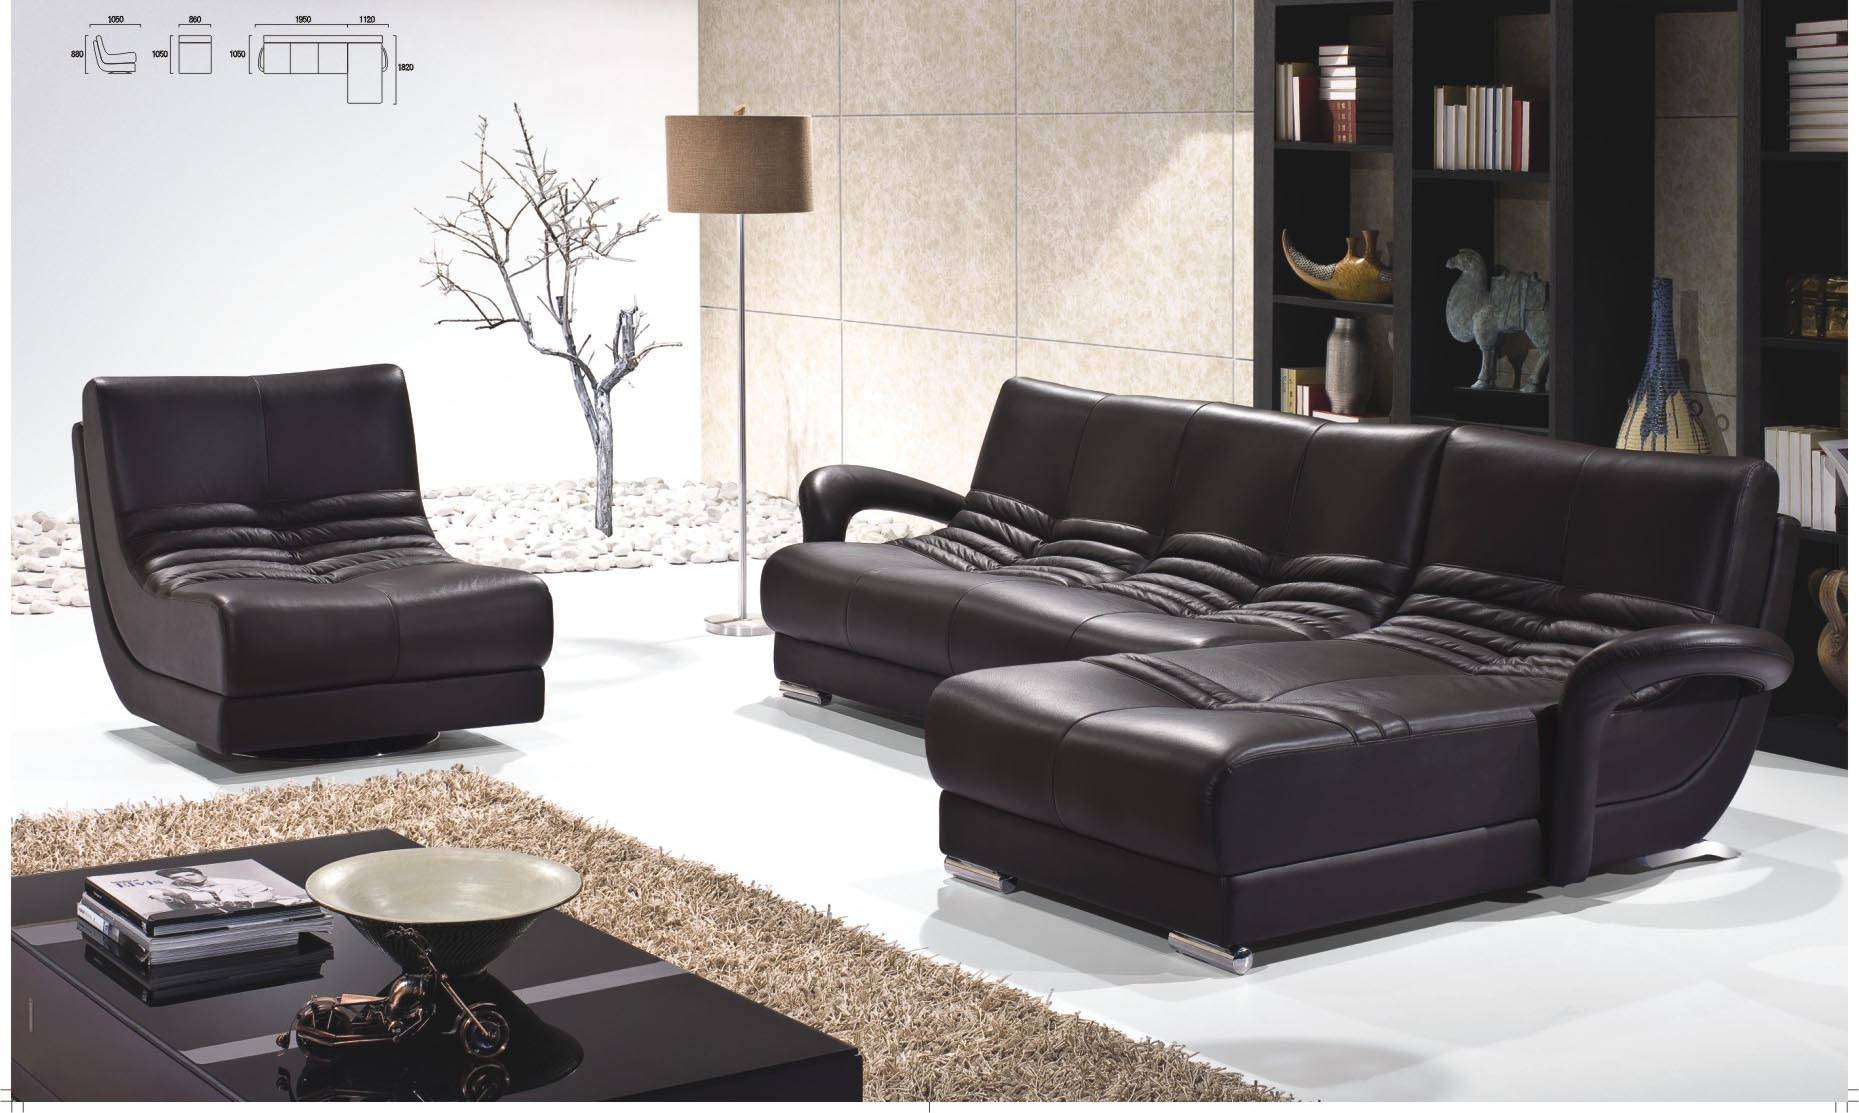 Remarkable Black Leather Living Room Set Ideas – Leather Living intended for Contemporary Black Leather Sofas (Image 22 of 30)